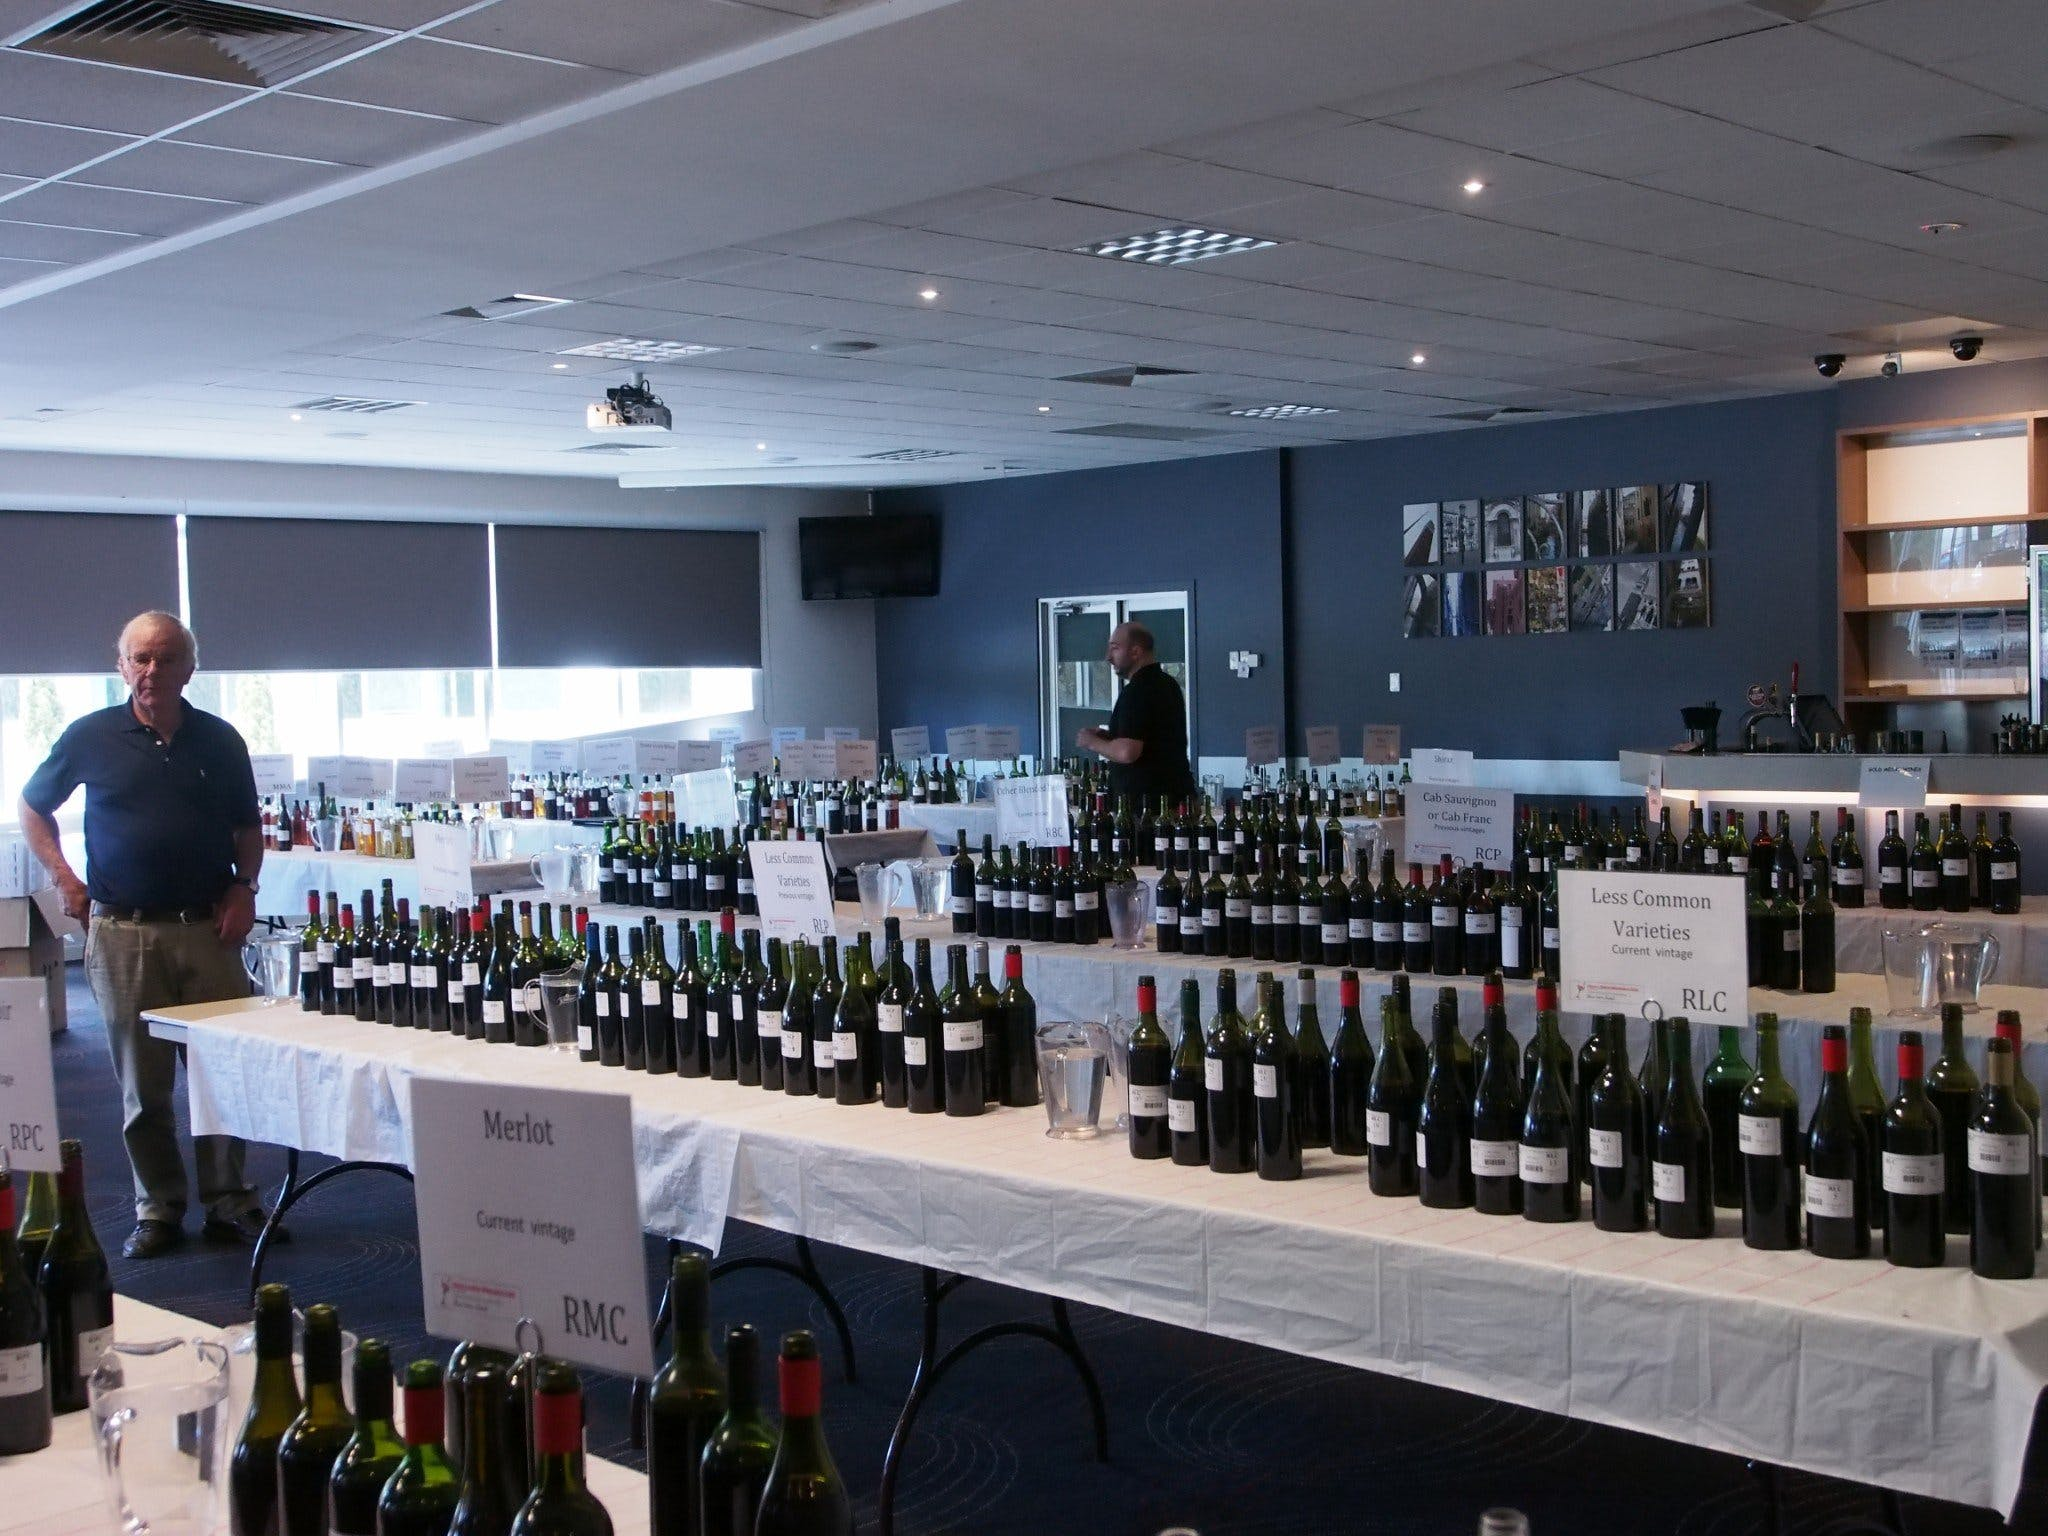 Eltham and District Wine Guild Annual Wine Show - 51st Annual Show - Accommodation in Surfers Paradise